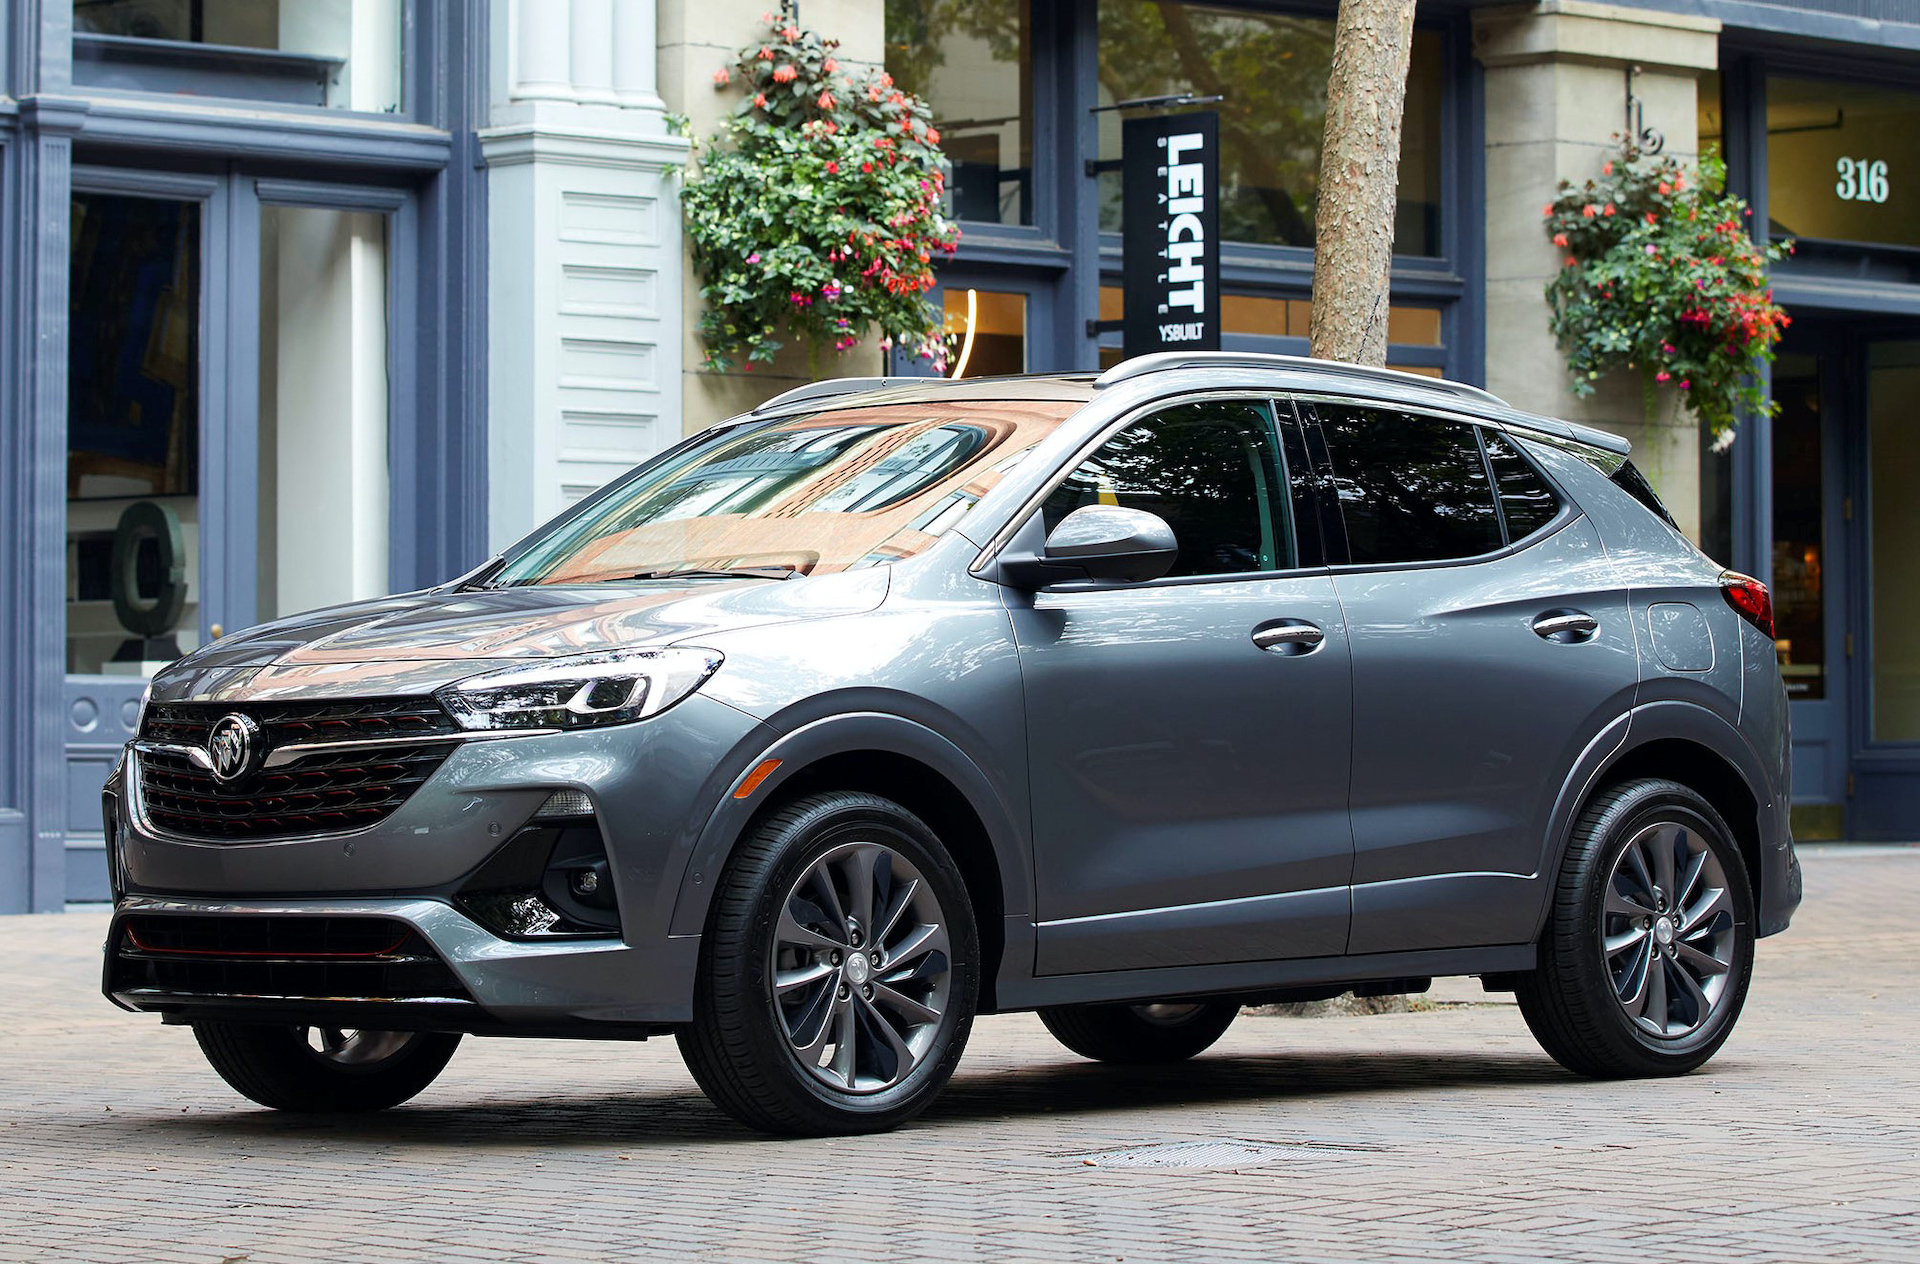 2021 Buick Encore Review, Ratings, Specs, Prices, And Photos 2021 Buick Encore Essence Engine, Awd, Msrp